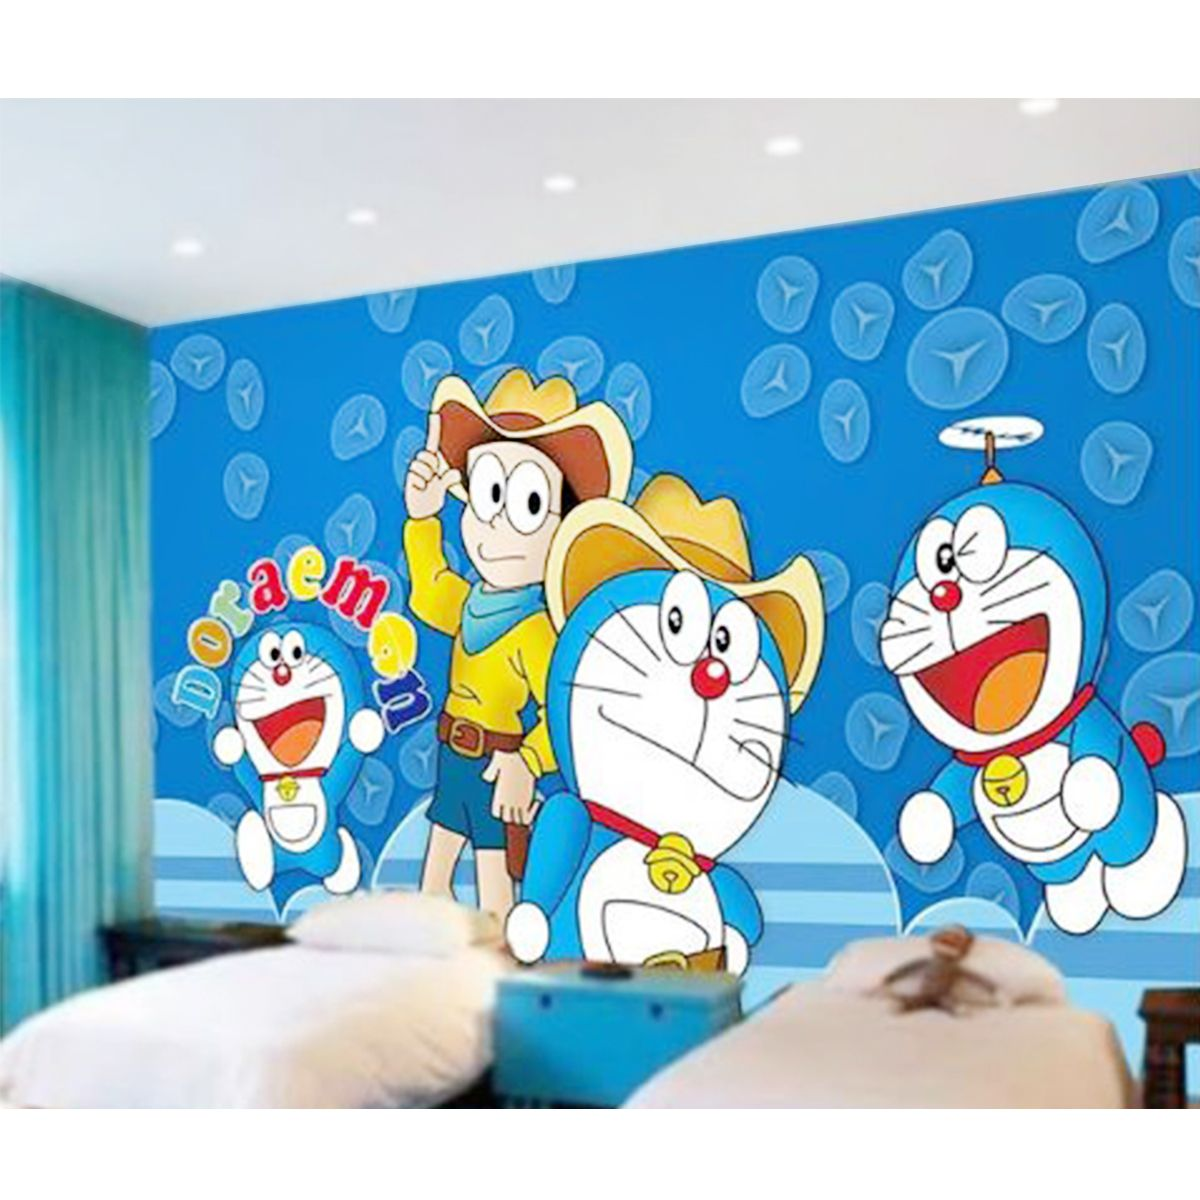 Doraemon Real Wallpaper Doraemon Doraemon Doraemon Wallpapers Cartoon Wall Doraemon wallpaper wall pictures